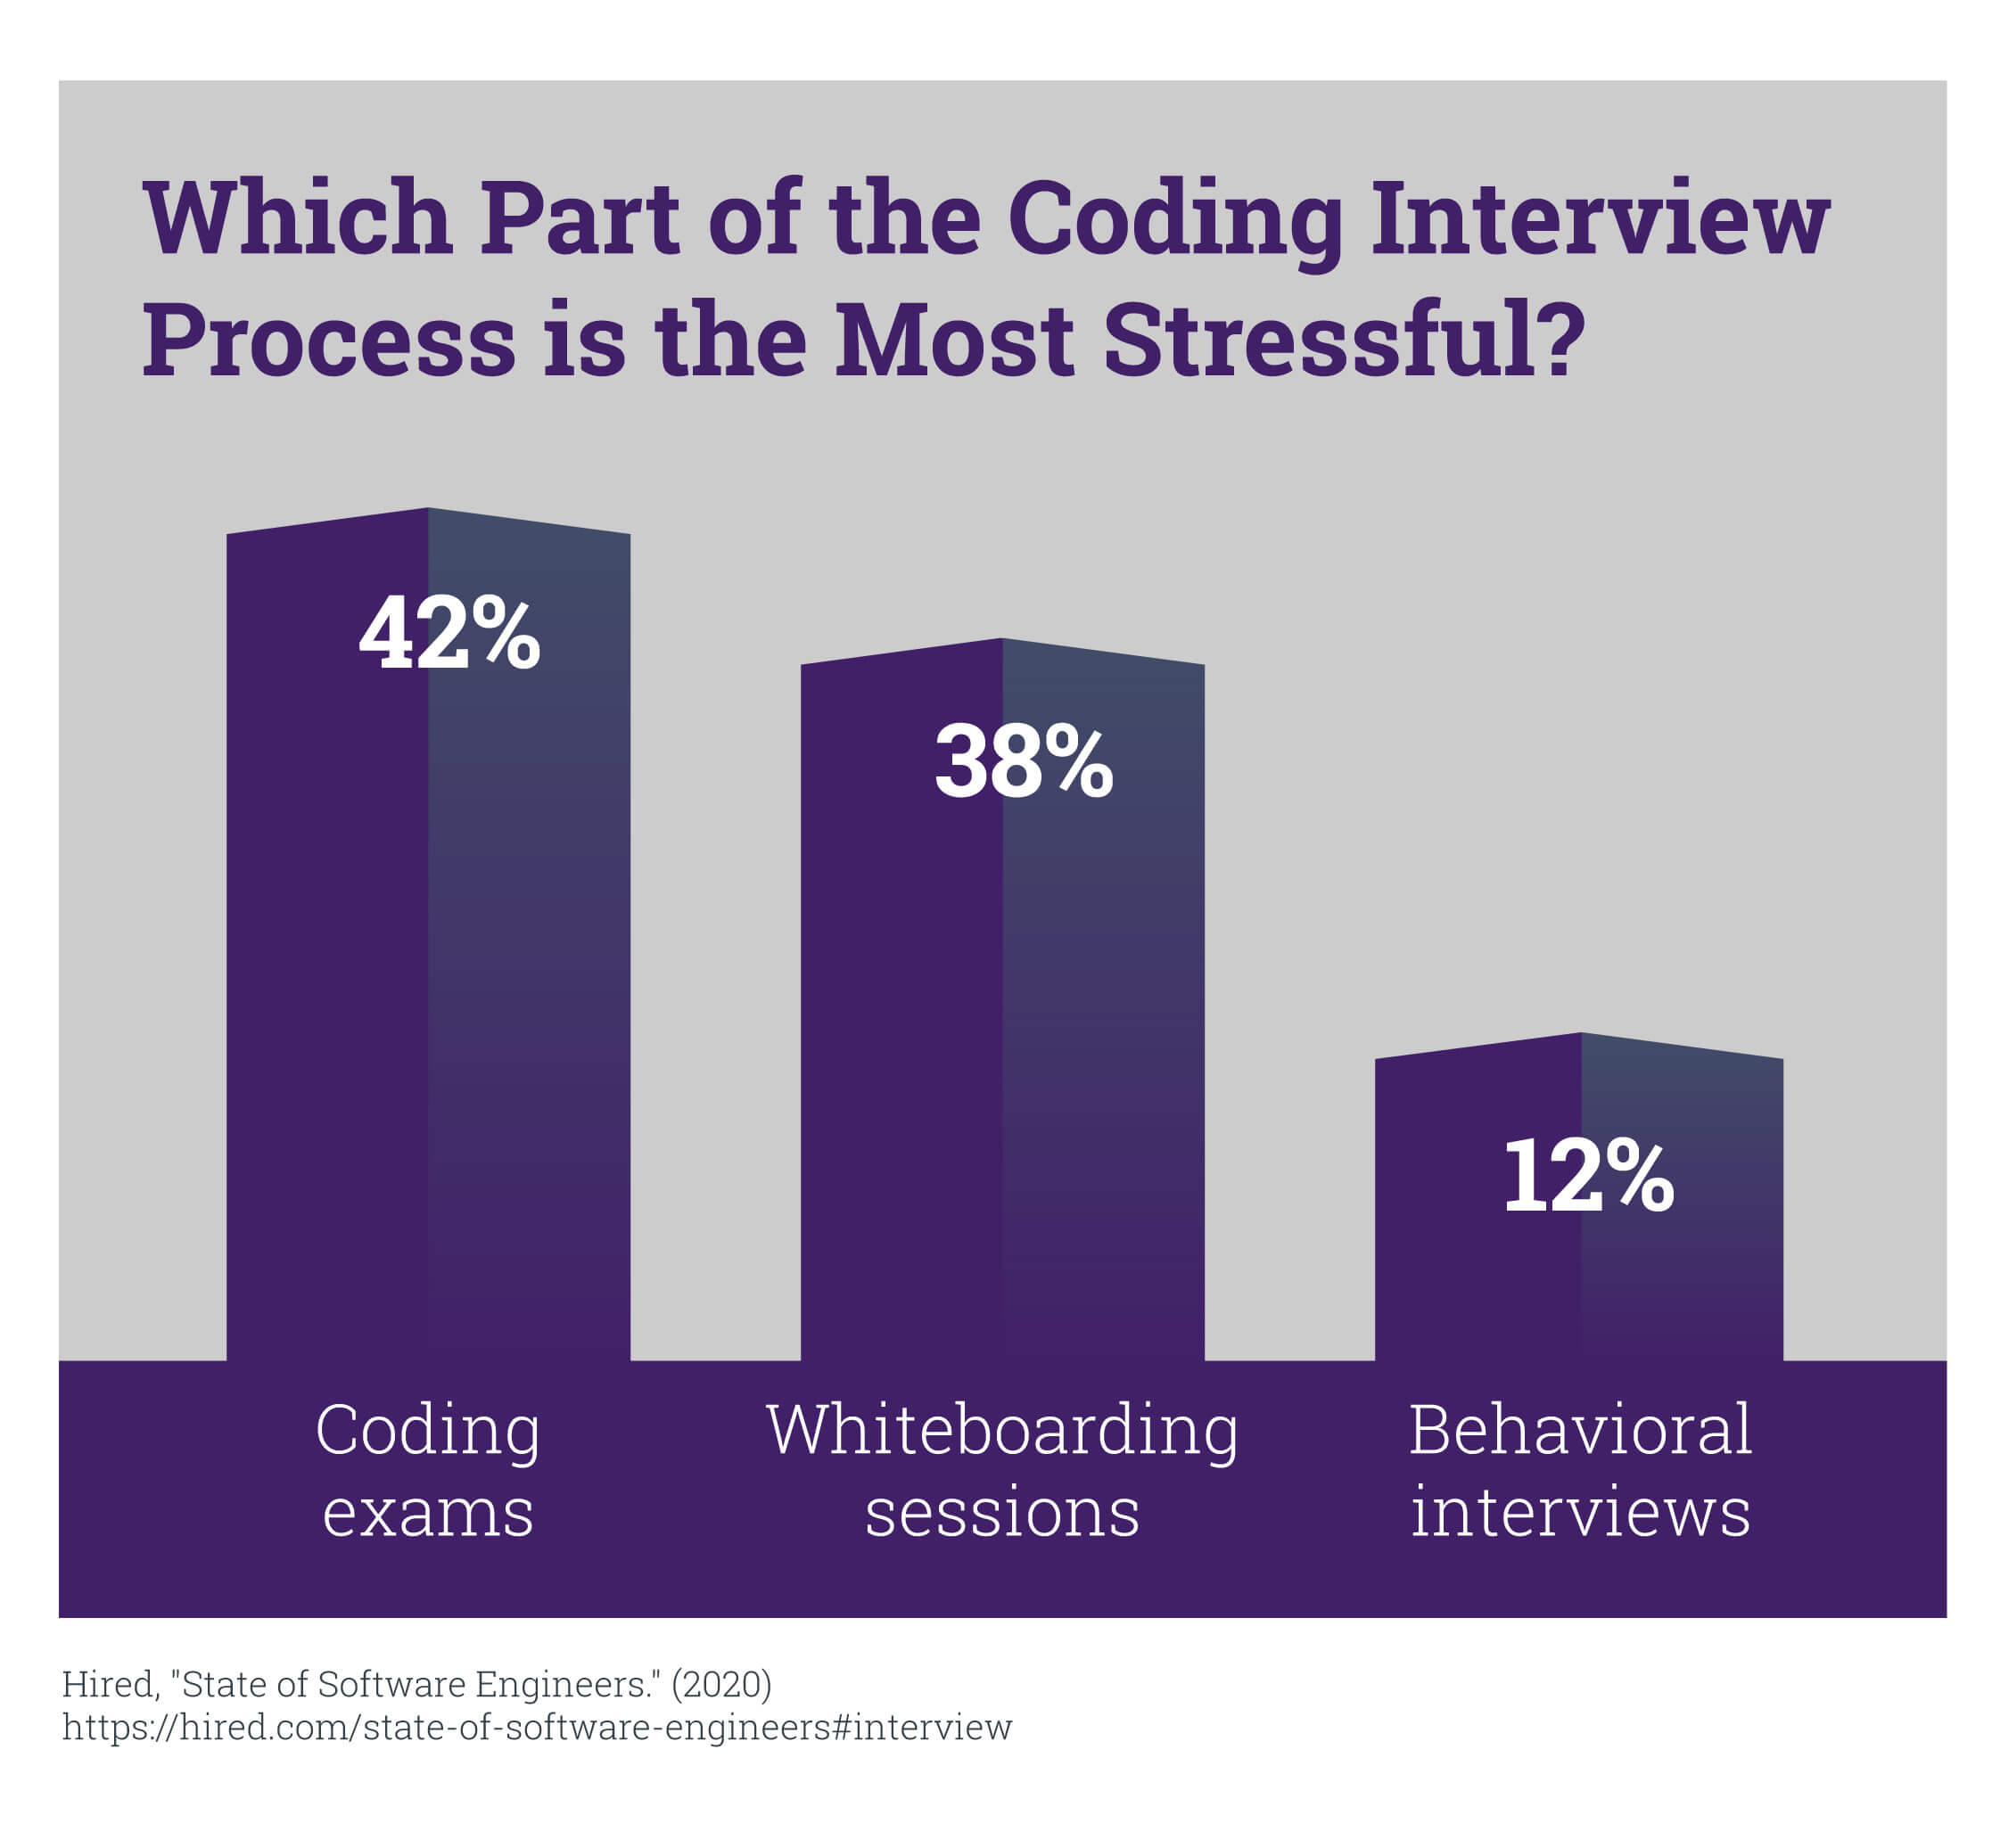 A chart that shows the most stressful part of the coding interview process